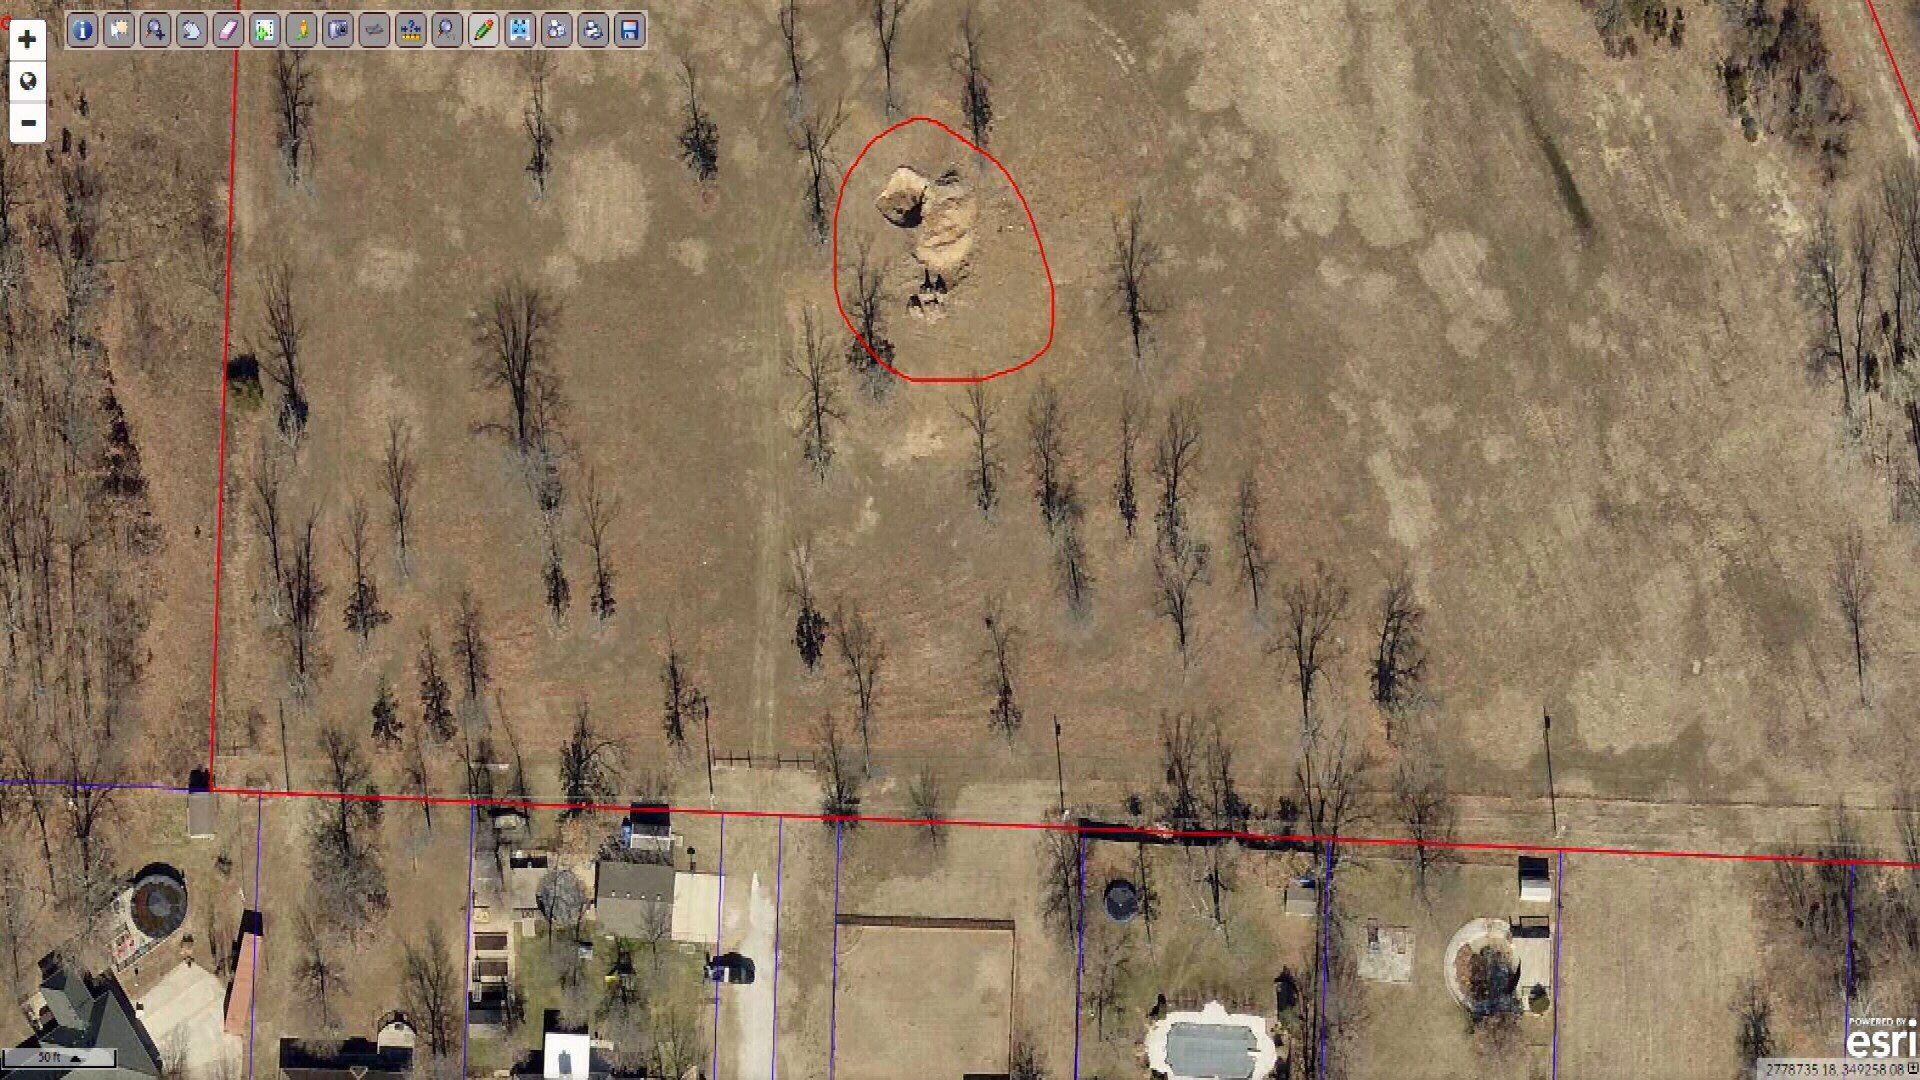 Satellite image showing hole on property